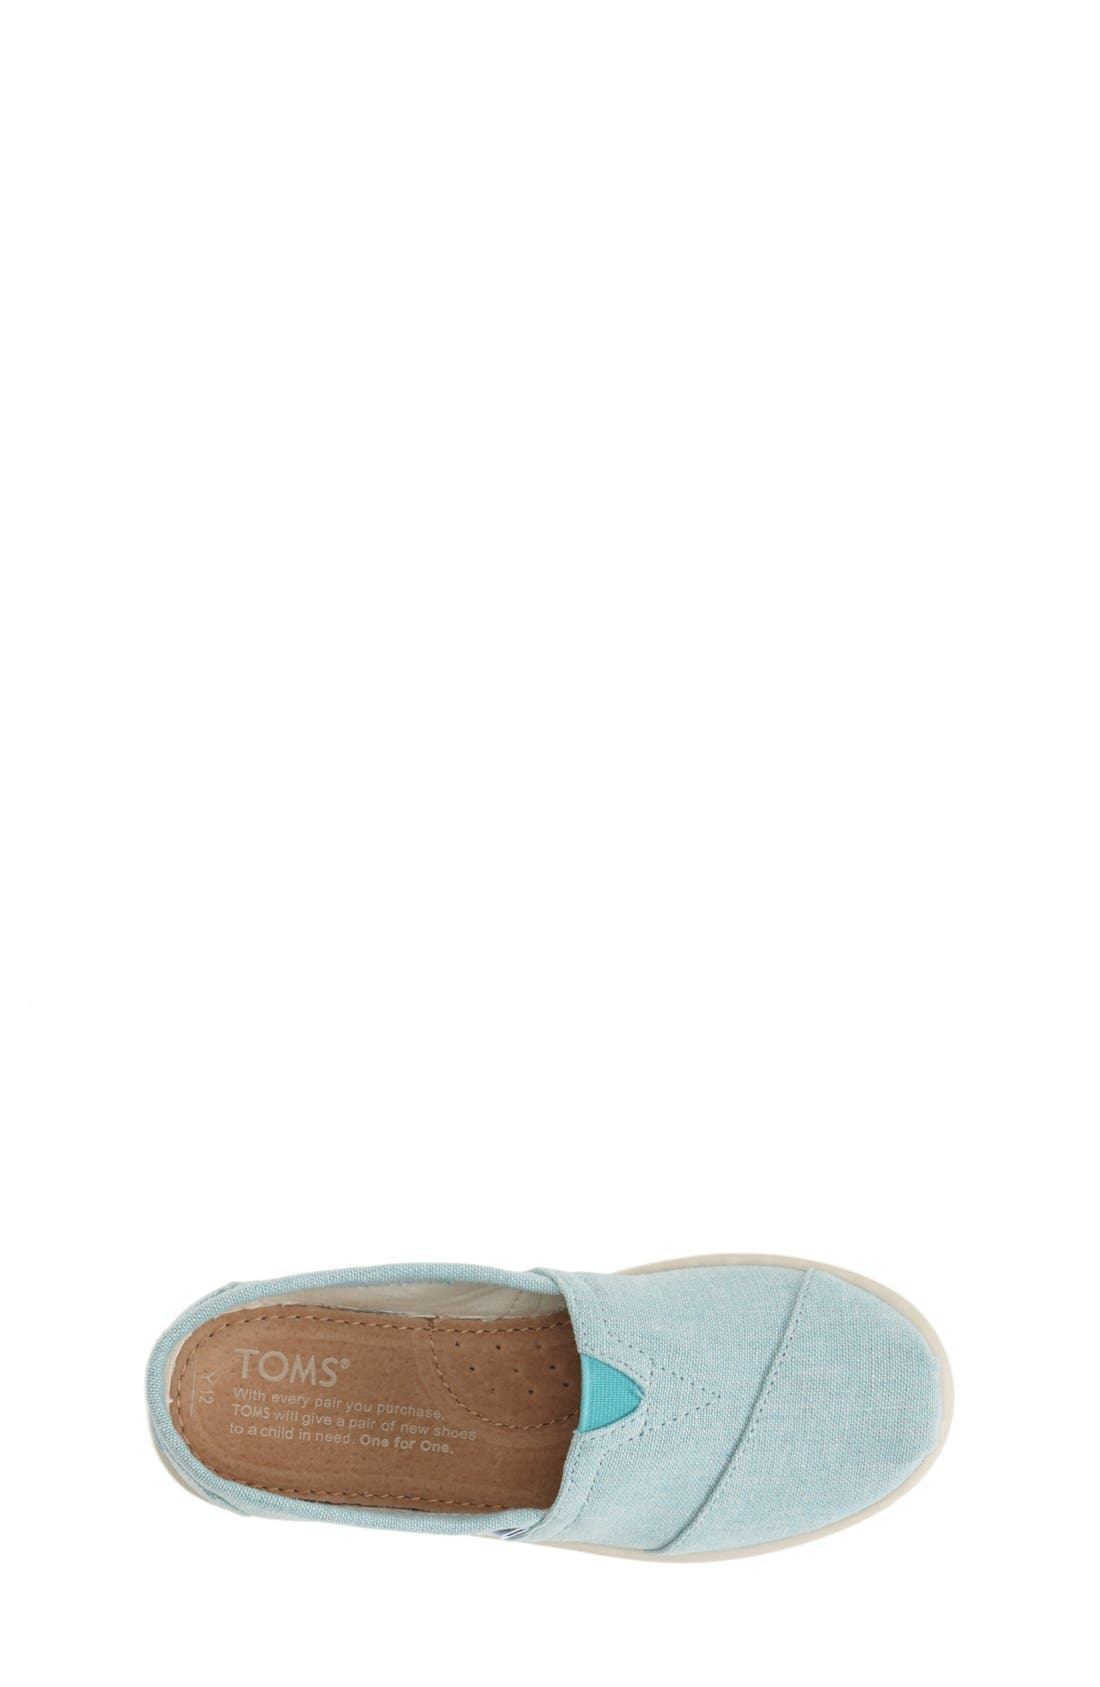 Alternate Image 3  - TOMS 'Classic Youth - Chambray' Slip-On (Toddler, Little Kid & Big Kid)